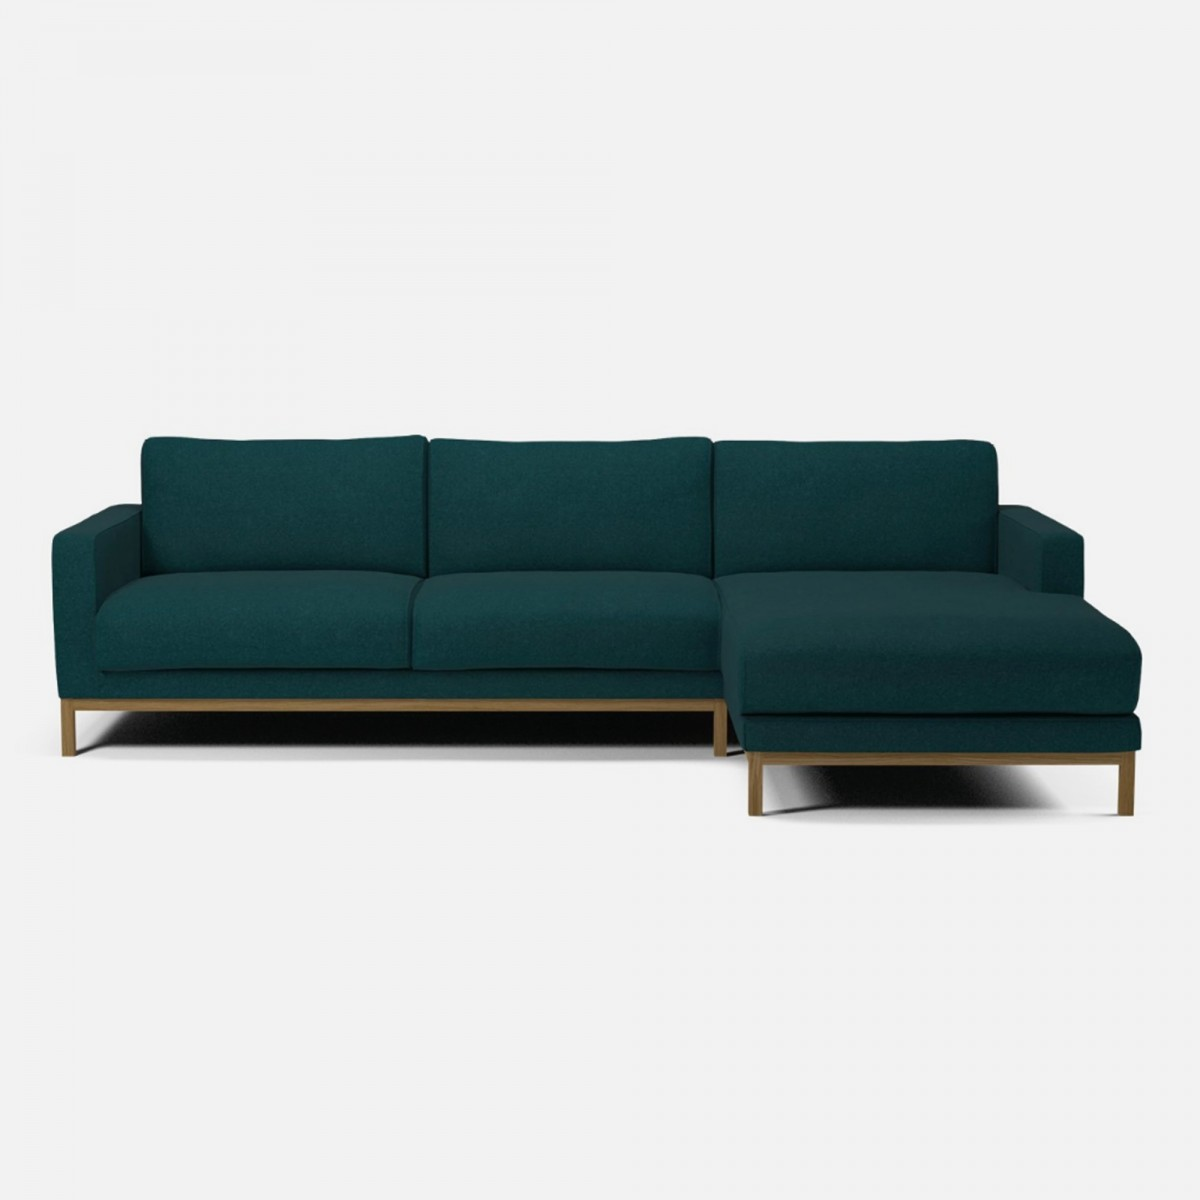 North 3 seaters sofa with chaise longue bolia for Sofa chaise longue